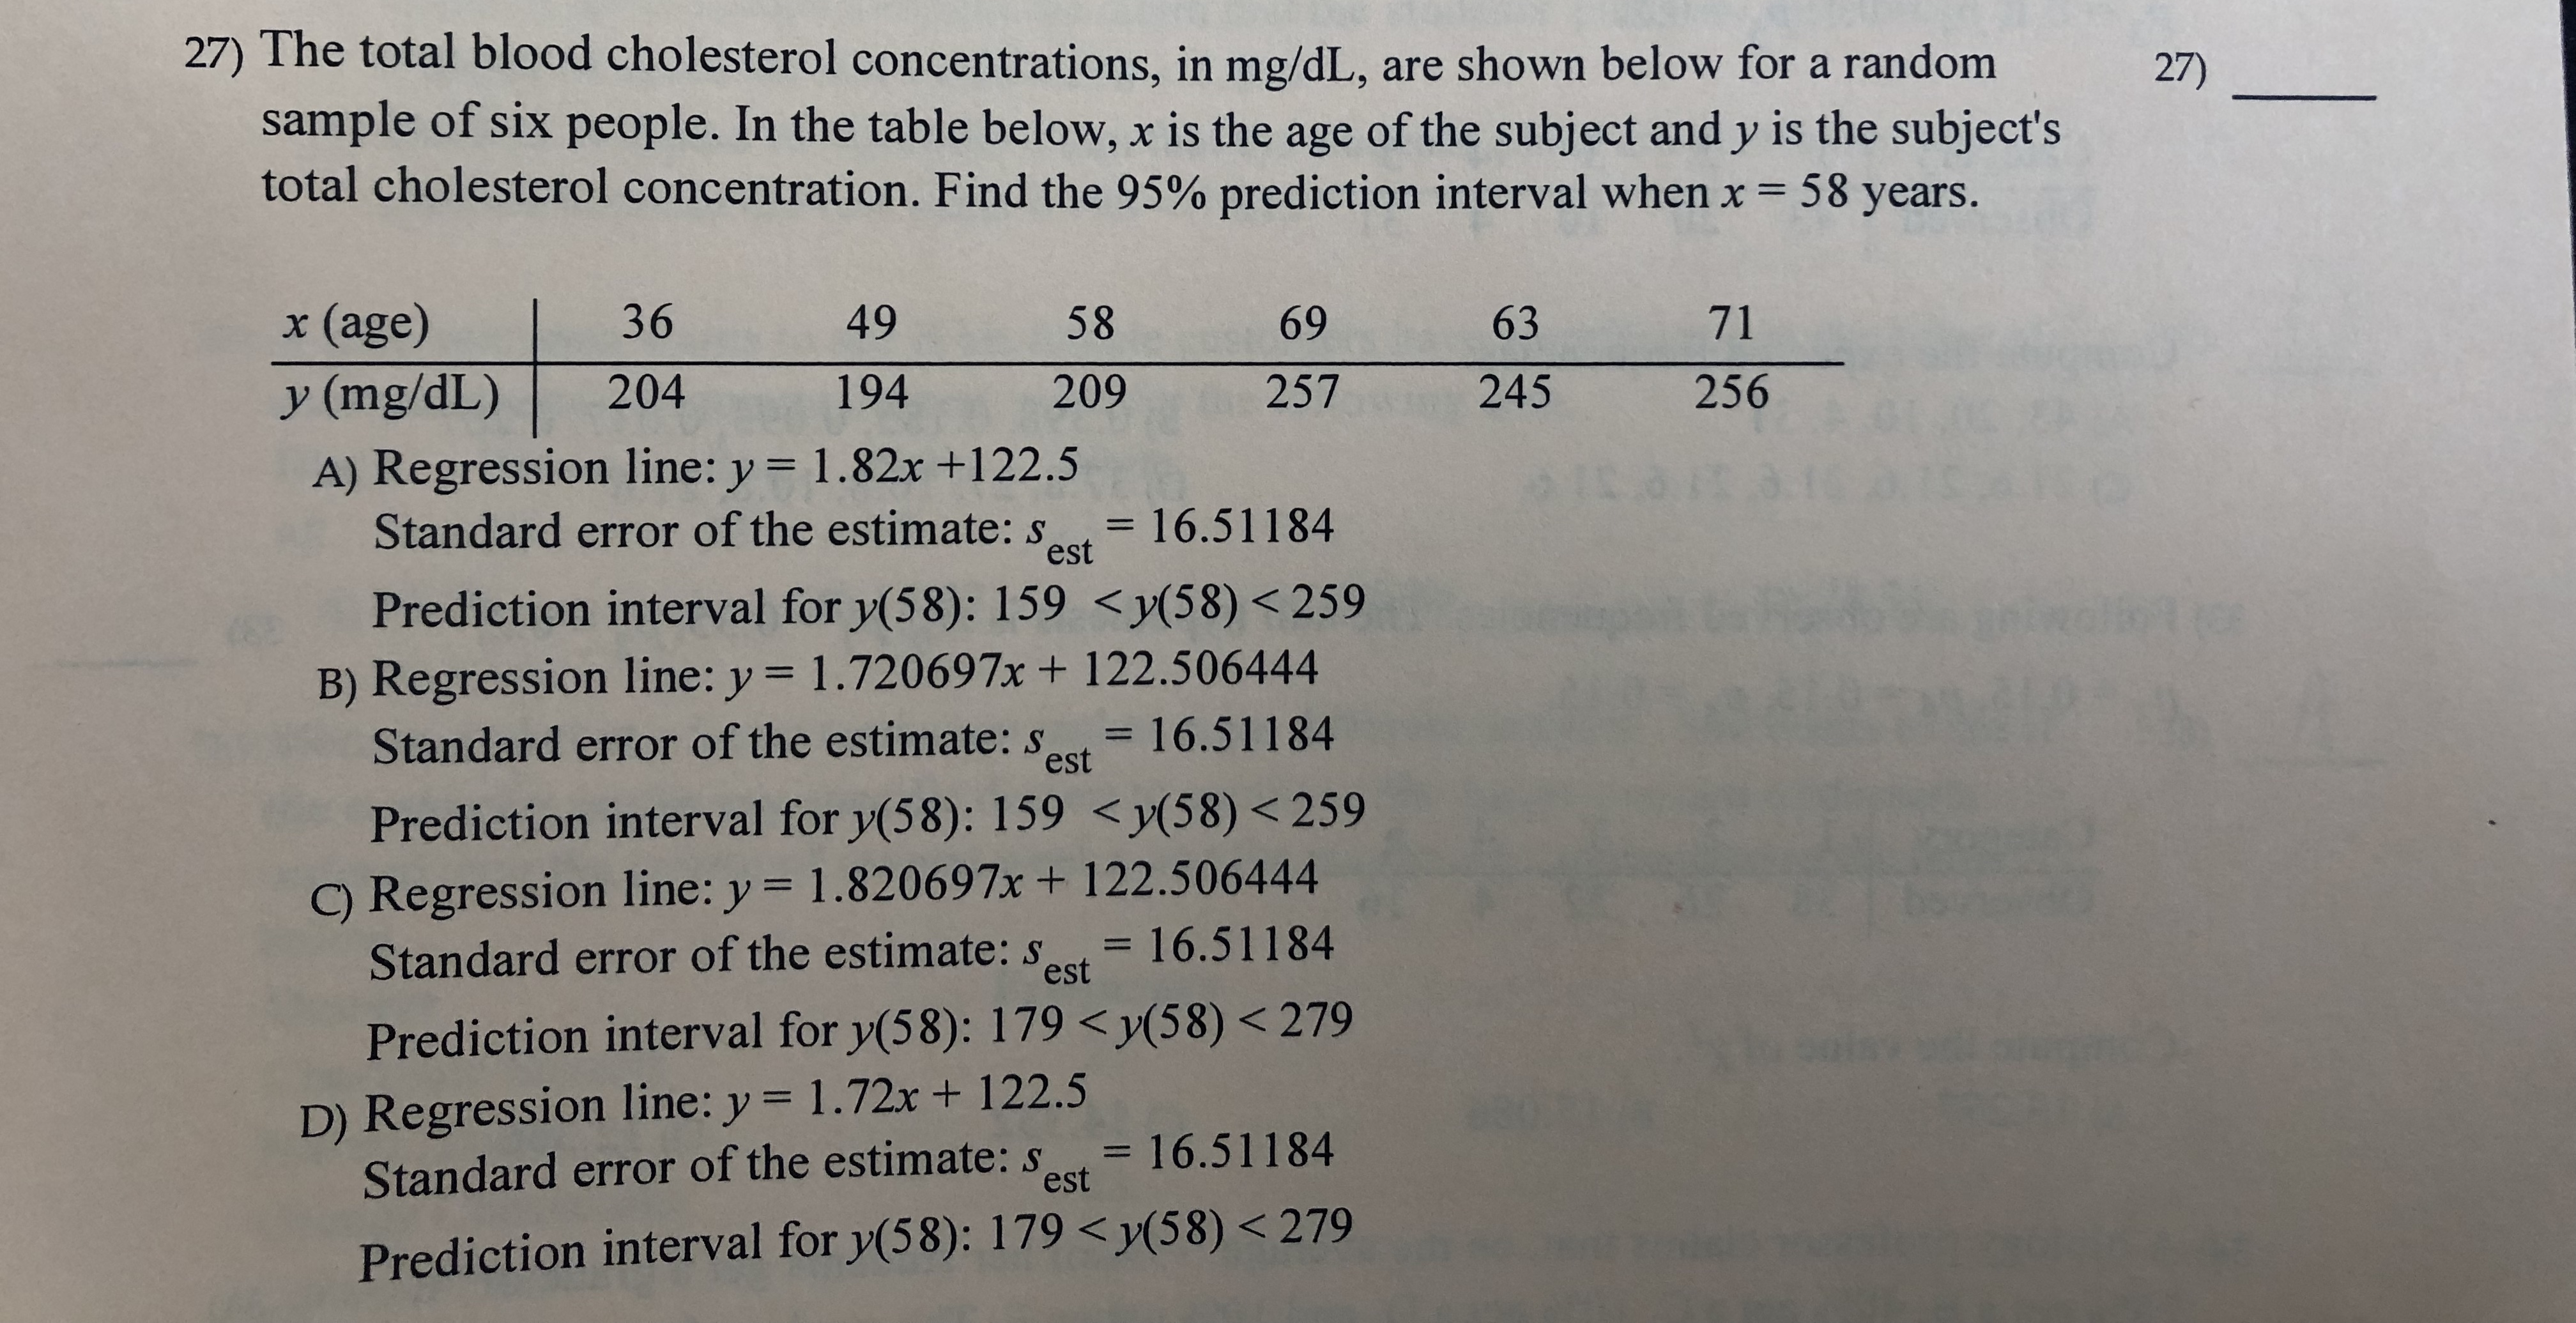 27) The total blood cholesterol concentrations, in mg/dL, are shown below for a random sample of six people. In the table below, x is the age of the subject and y is the subject's total cholesterol concentration. Find the 95% prediction interval when x = 58 years. 27) x (age) 36 49 58 69 63 71 204 256 194 257 245 y (mg/dL) 209 A) Regression line: y = 1.82x +122.5 Standard error of the estimate: s est = 16.51184 Prediction interval for y(58): 159 <y(58)< 259 B) Regression line: y = 1.720697x+ 122.506444 Standard error of the estimate: s = 16.51184 est Prediction interval for y(58): 159 <y(58) < 259 C) Regression line: y = 1.820697x + 122.506444 Standard error of the estimate: s = 16.51184 est Prediction interval for y(58): 179 <y(58) < 279 D) Regression line: y 1.72x + 122.5 Standard error of the estimate: st 16.51184 est Prediction interval for y(58): 179 <y(58) < 279